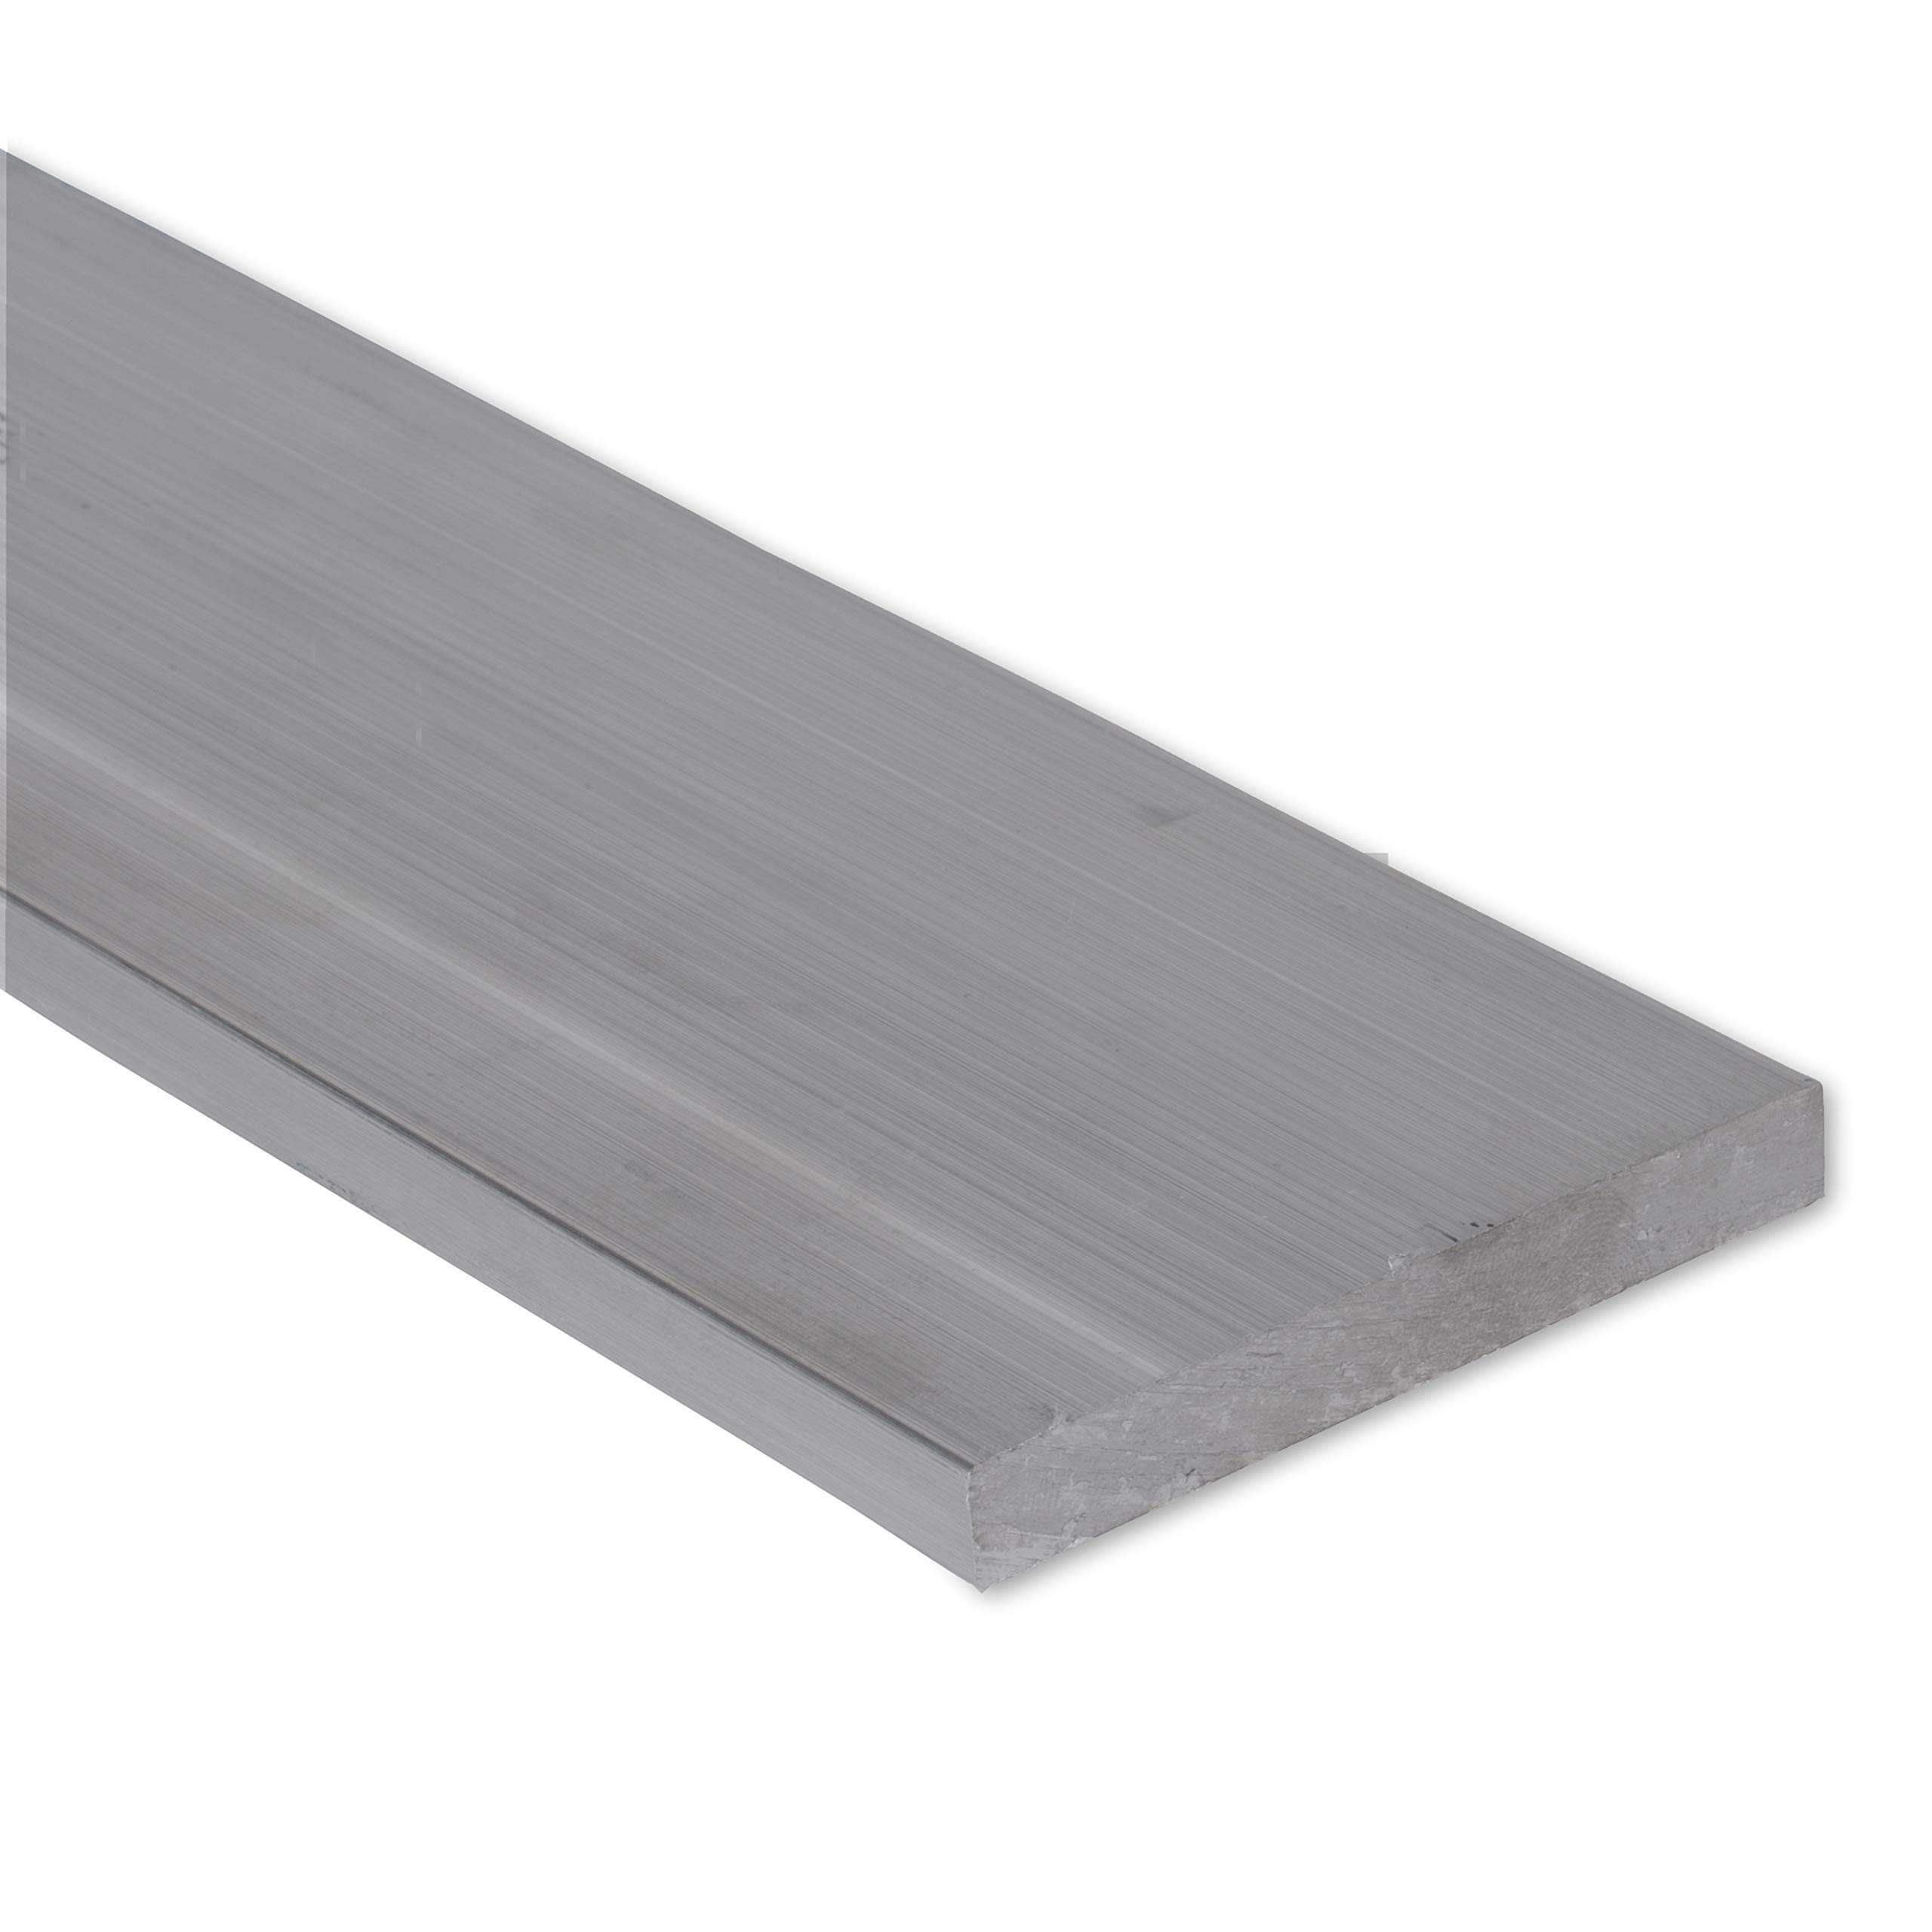 1/4'' X 4'' Stainless Steel Flat Bar, 304 General Purpose Plate, 24'' Length, Mill Stock, 0.25 inch Thick by Remington Industries